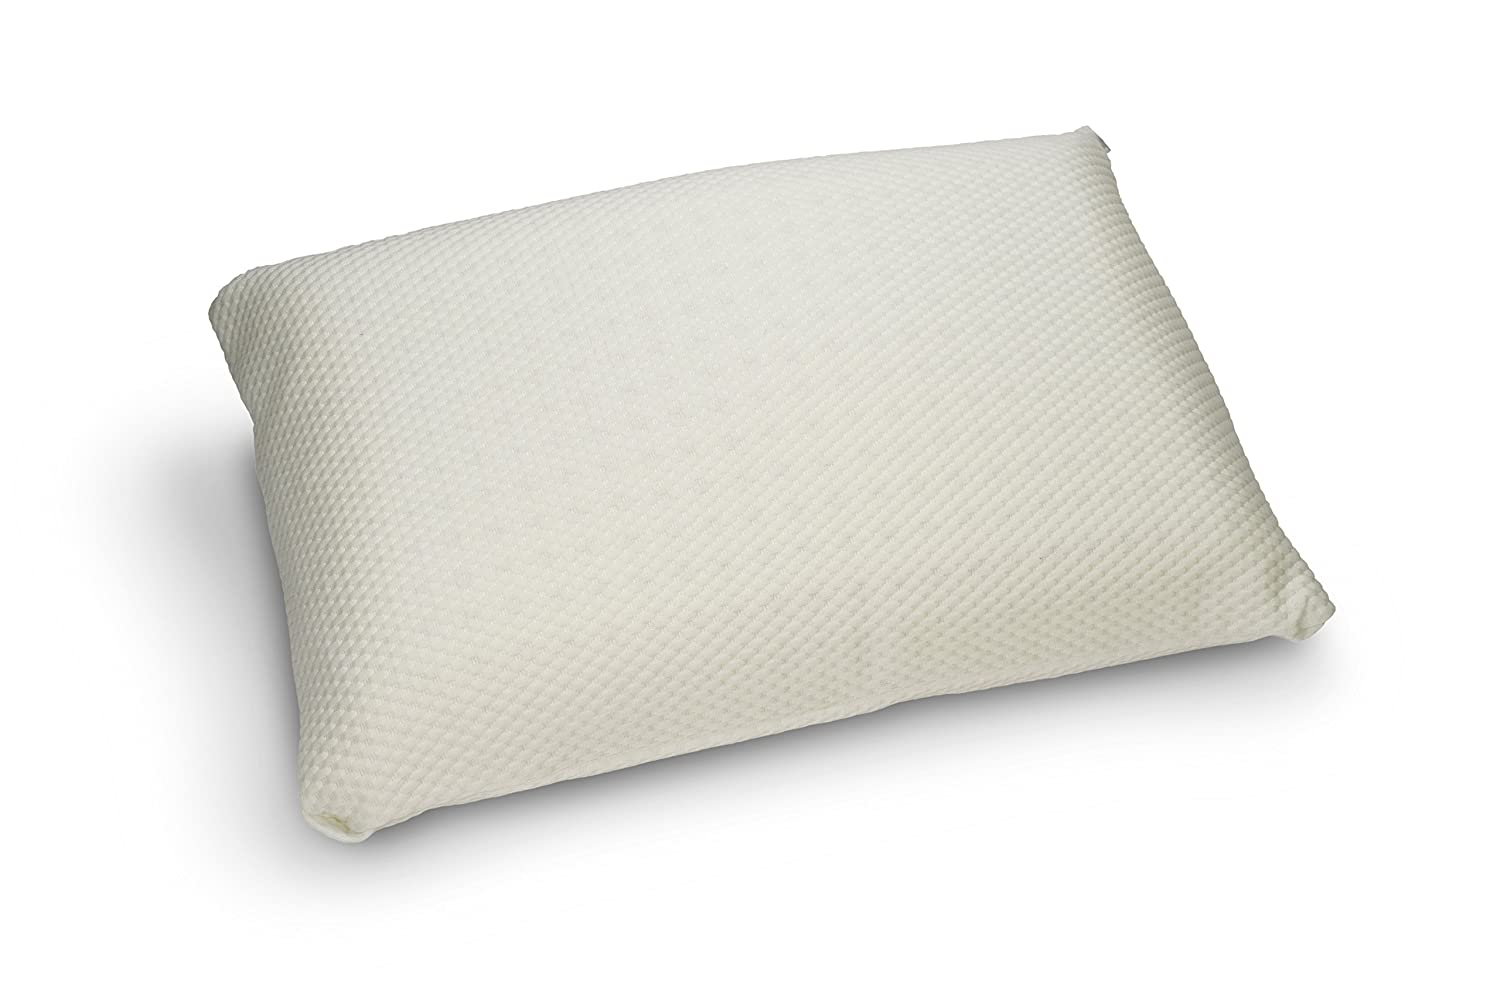 bed king fresh the memory sleepers pillow of unique for size gel foam best pillows side original